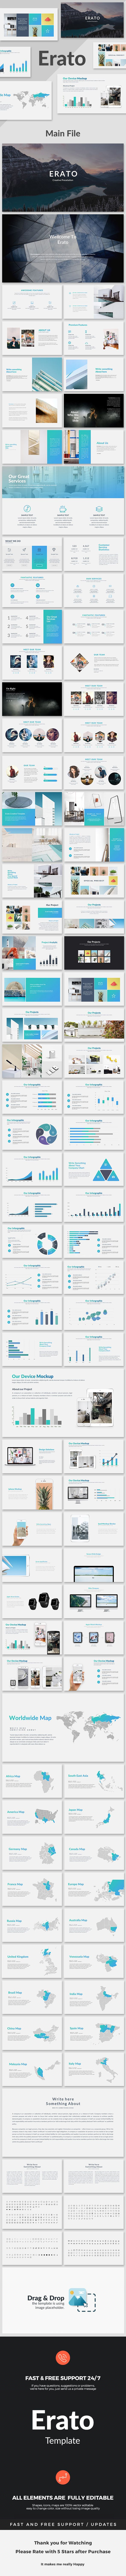 Erato - Creative Powerpoint Template - Creative PowerPoint Templates